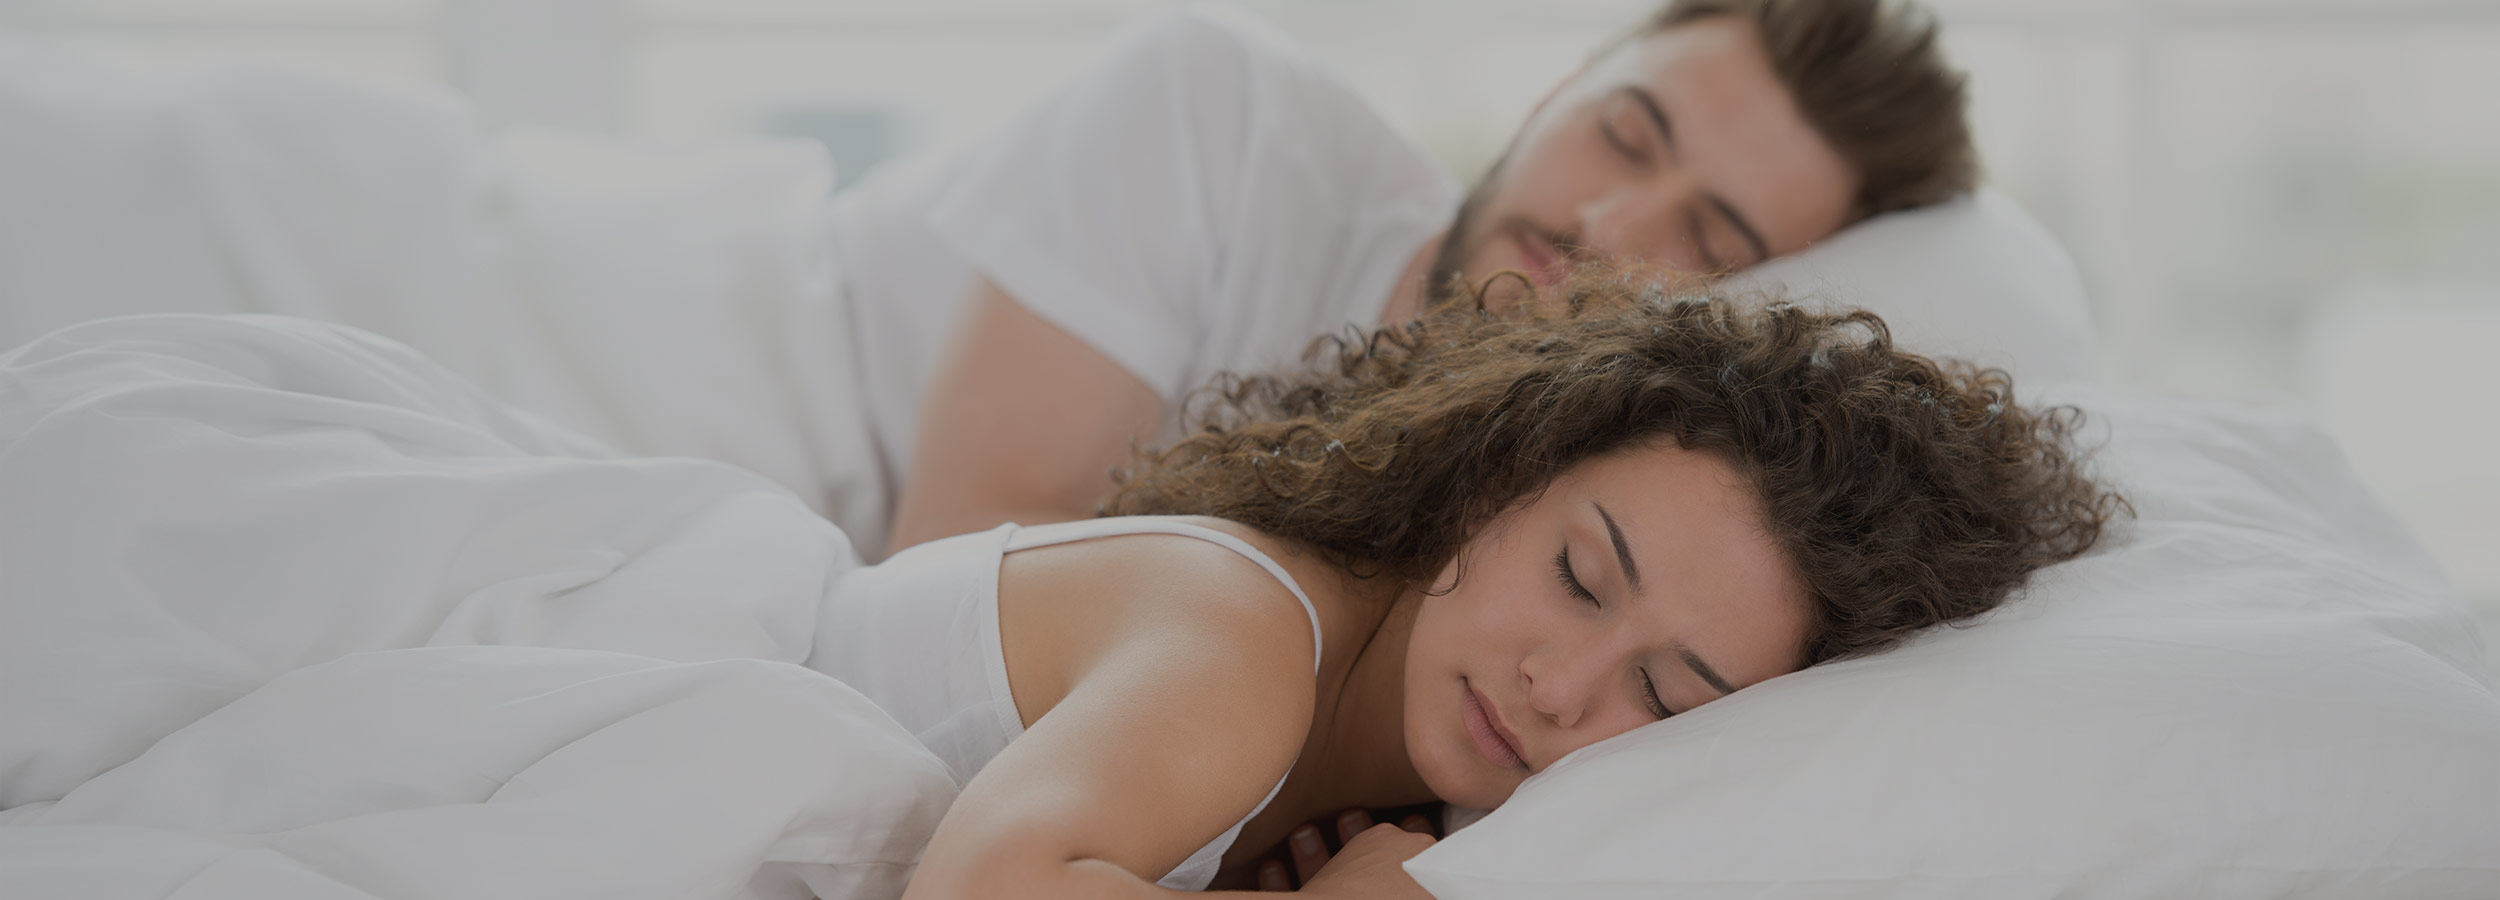 Snoring Relief!   SNORBAN STOPS YOUR SNORING OR YOUR MONEY BACK   Buy Now